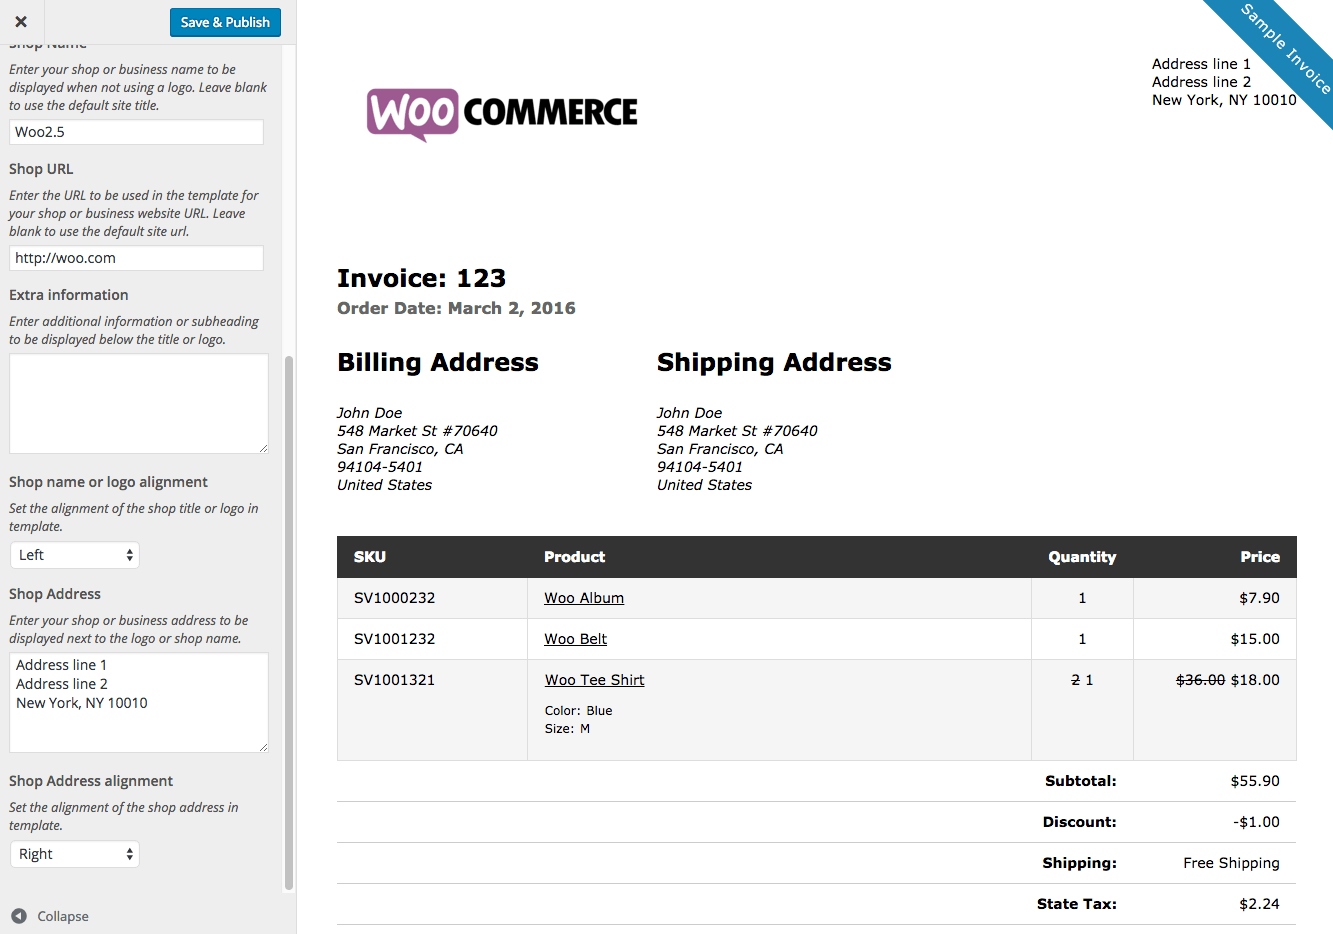 Thassosus  Winning Print Invoices Amp Packing Lists  Woocommerce With Fascinating Woocommerce Print Invoices  Packing Lists Customizer With Captivating Order Invoices Also Woocommerce Print Invoice In Addition Proforma Invoices And Custom Carbon Copy Invoices As Well As Blank Invoice Forms Additionally Invoice Due Upon Receipt From Woocommercecom With Thassosus  Fascinating Print Invoices Amp Packing Lists  Woocommerce With Captivating Woocommerce Print Invoices  Packing Lists Customizer And Winning Order Invoices Also Woocommerce Print Invoice In Addition Proforma Invoices From Woocommercecom